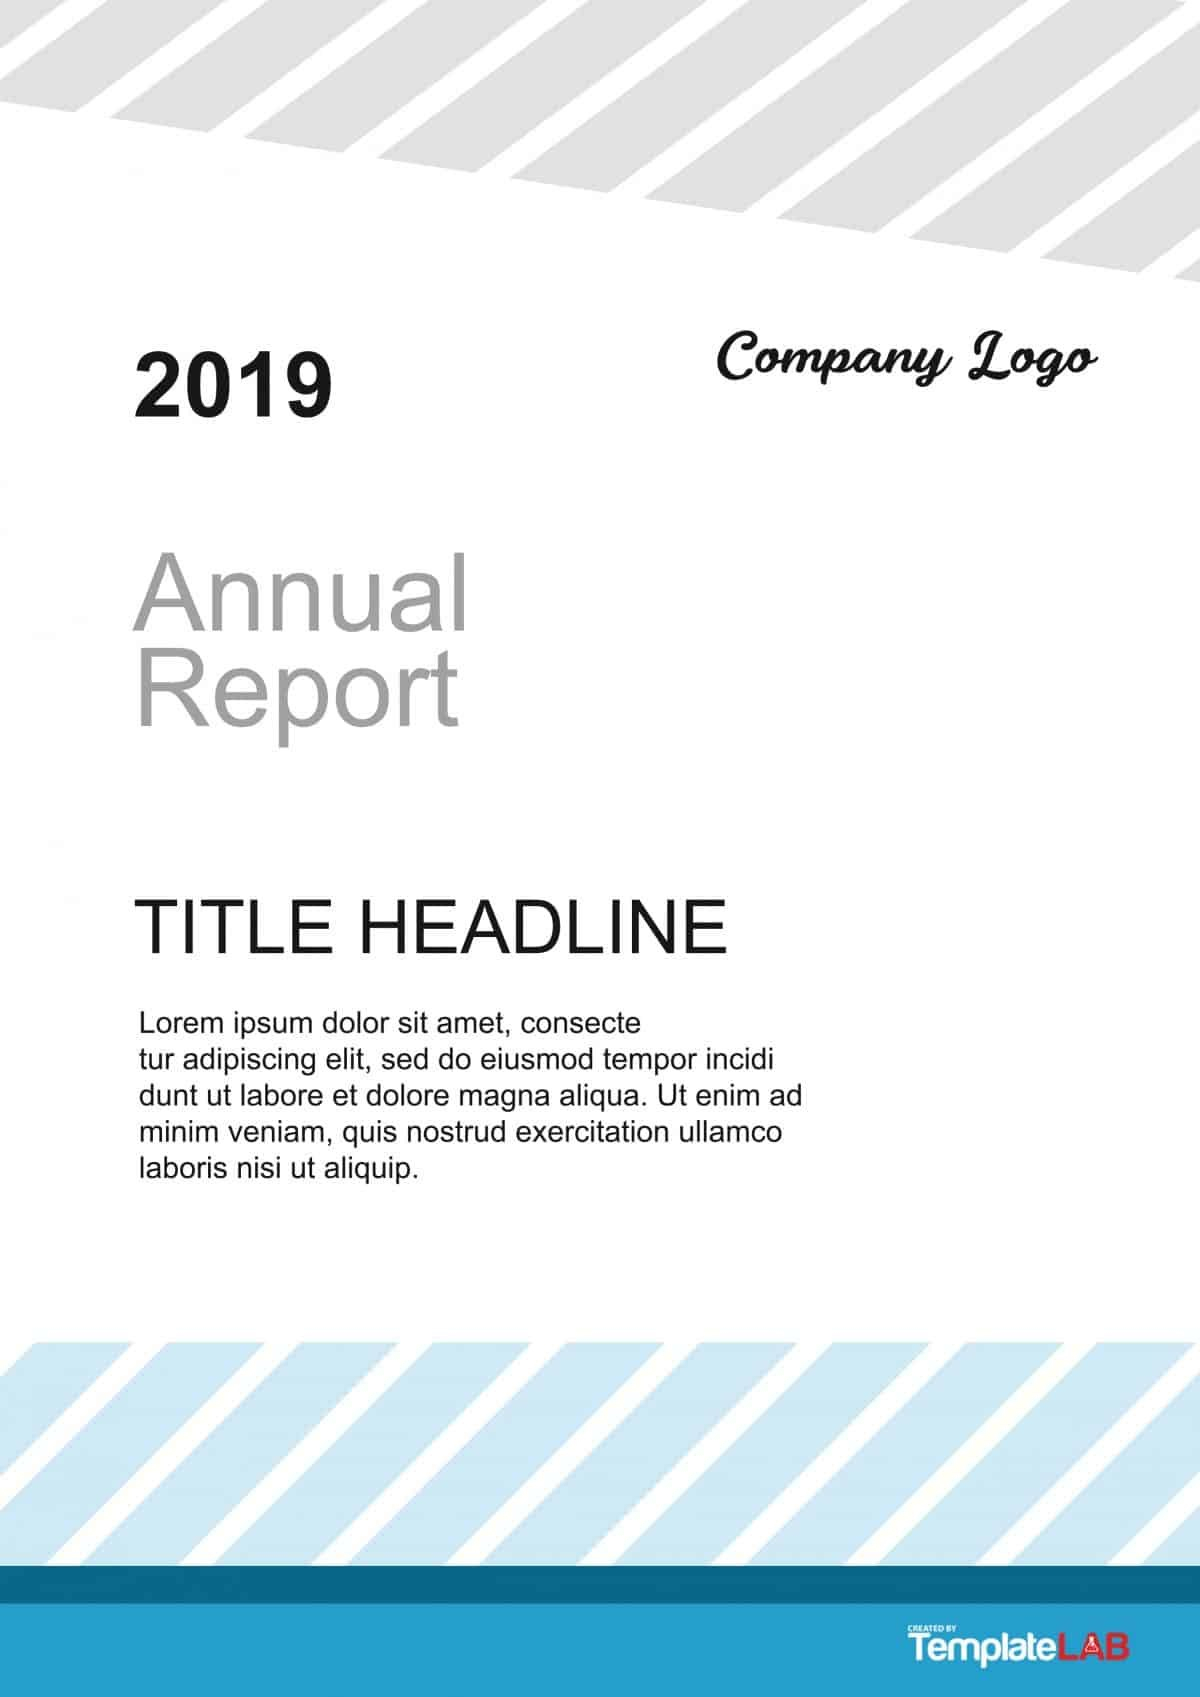 Amazing Cover Page Templates Word  Psd ᐅ Template Lab Within Technical Report Cover Page Template